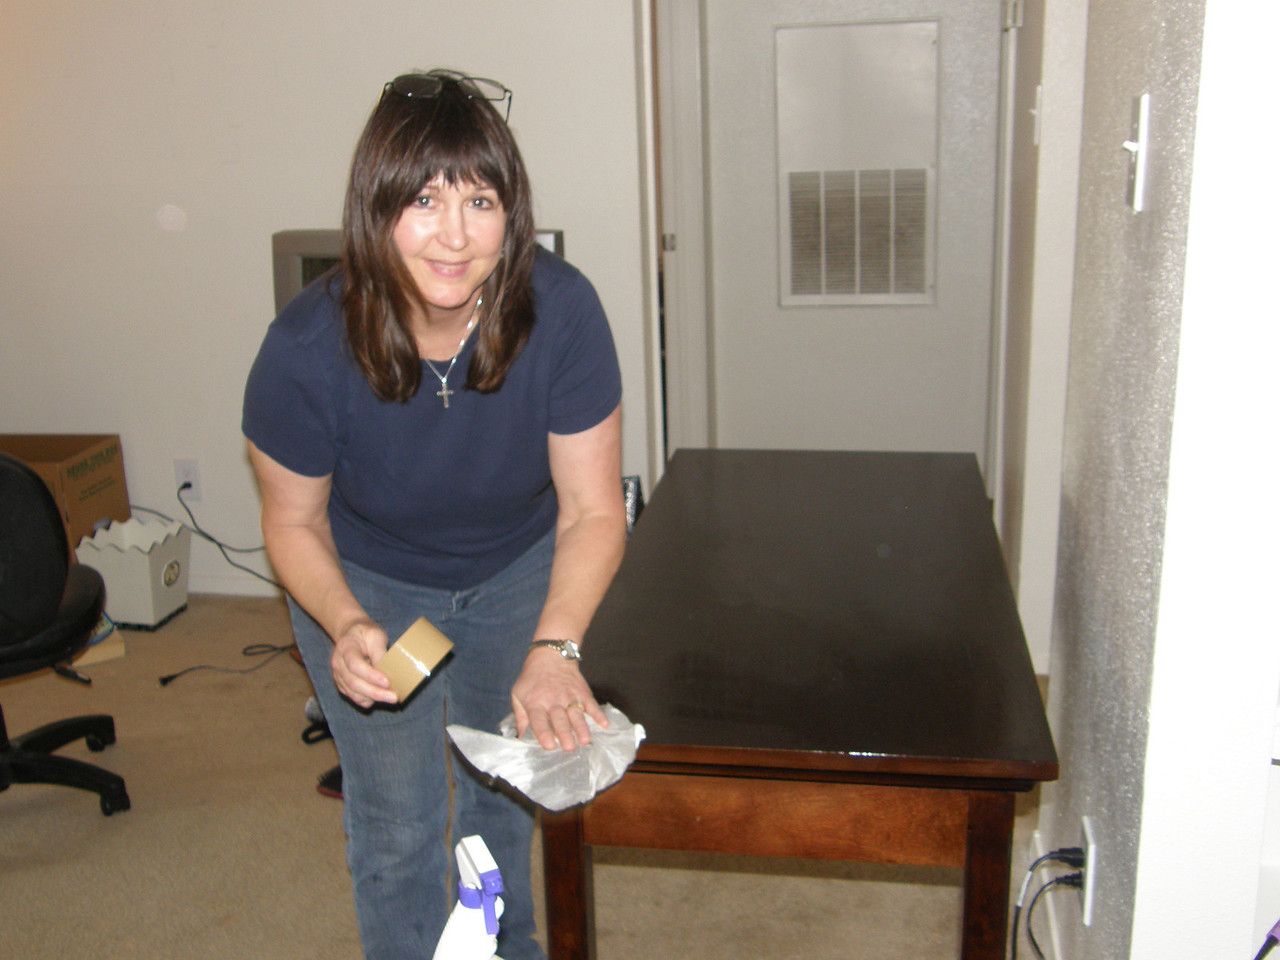 Mary Jane polishing up the furniture before Sarah leaves her old apartment.